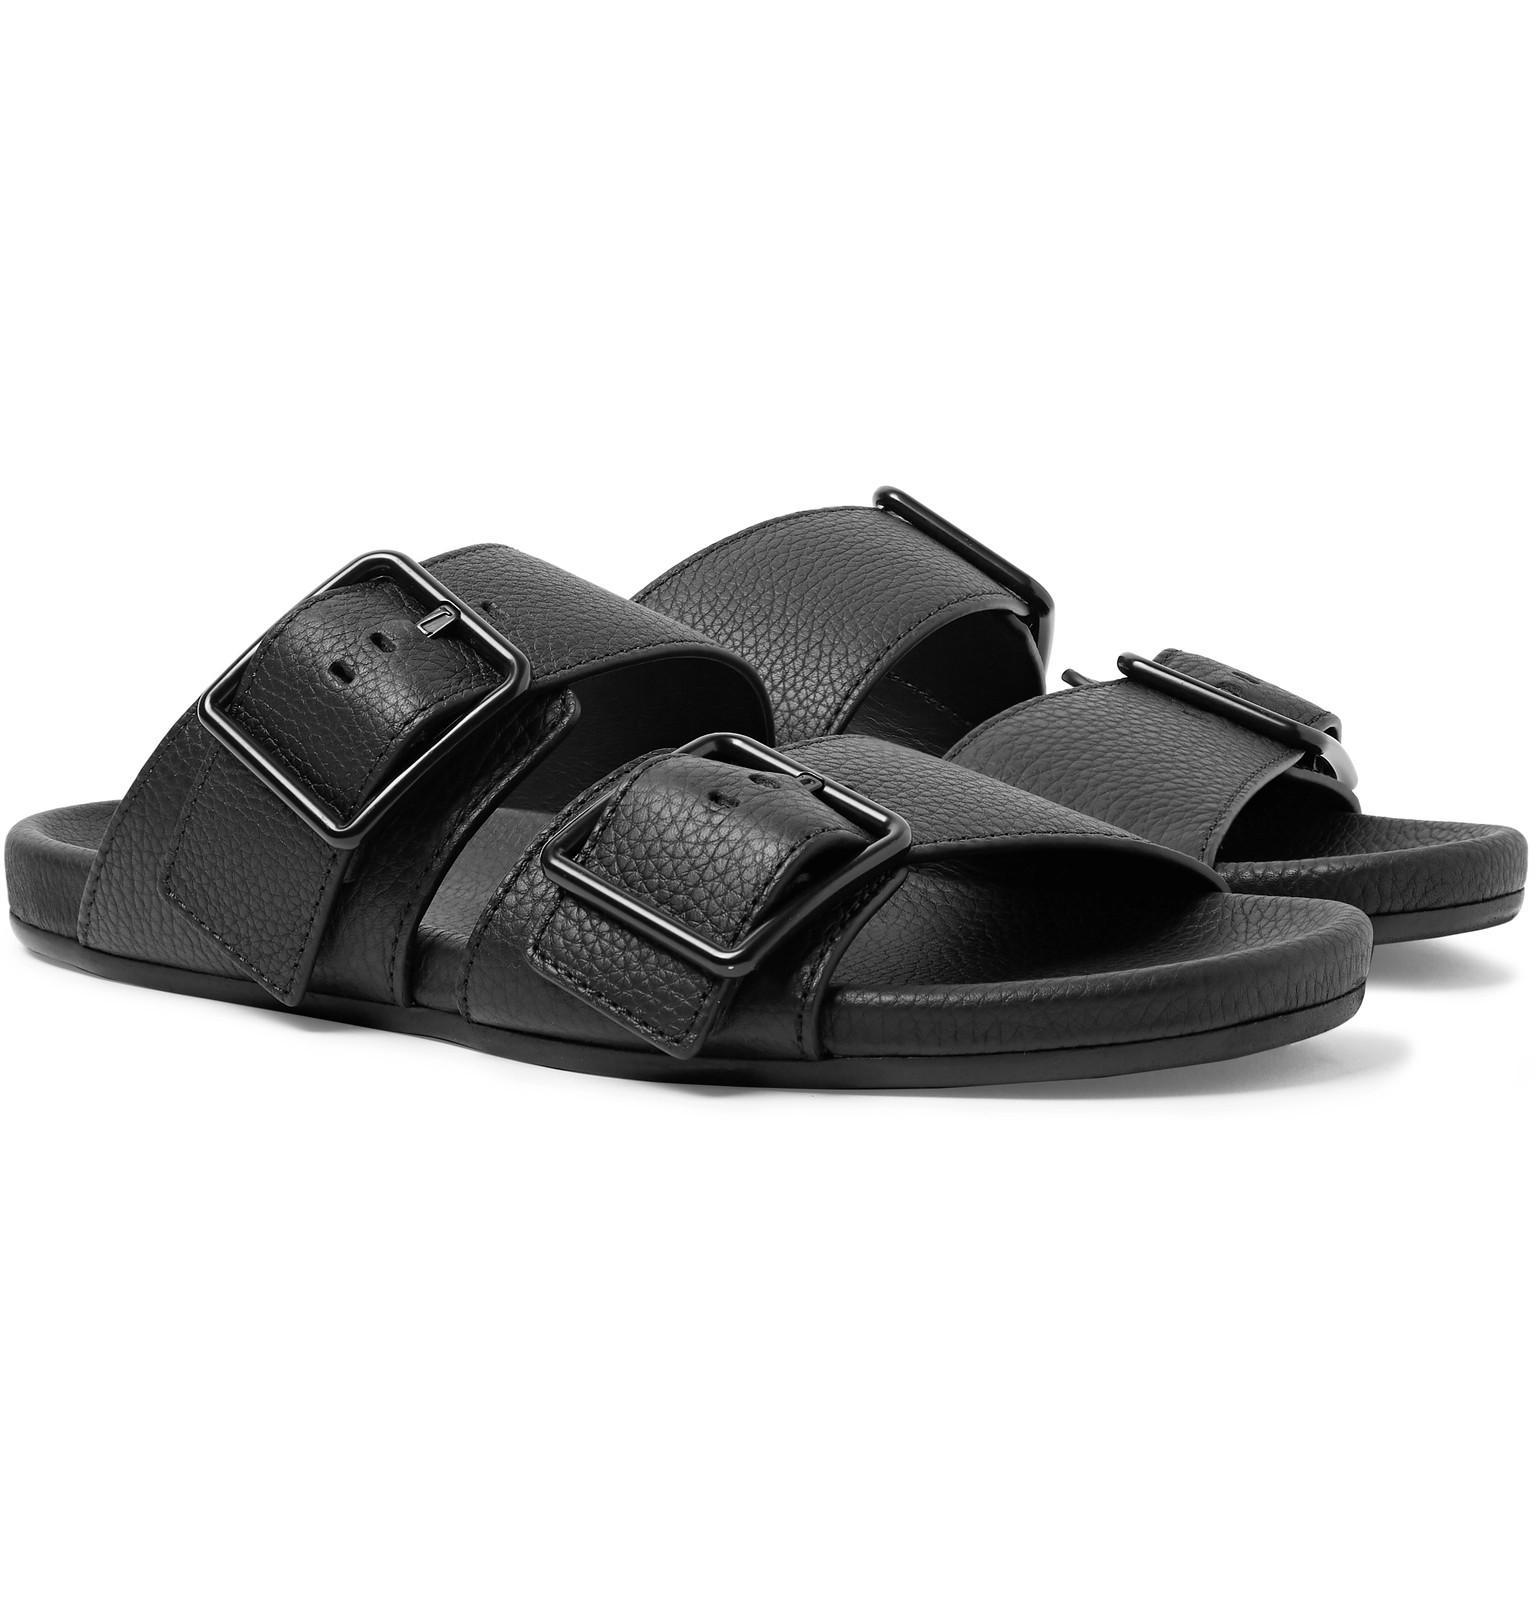 305265a208e0 Lyst - Lanvin Grained Leather Slides in Black for Men